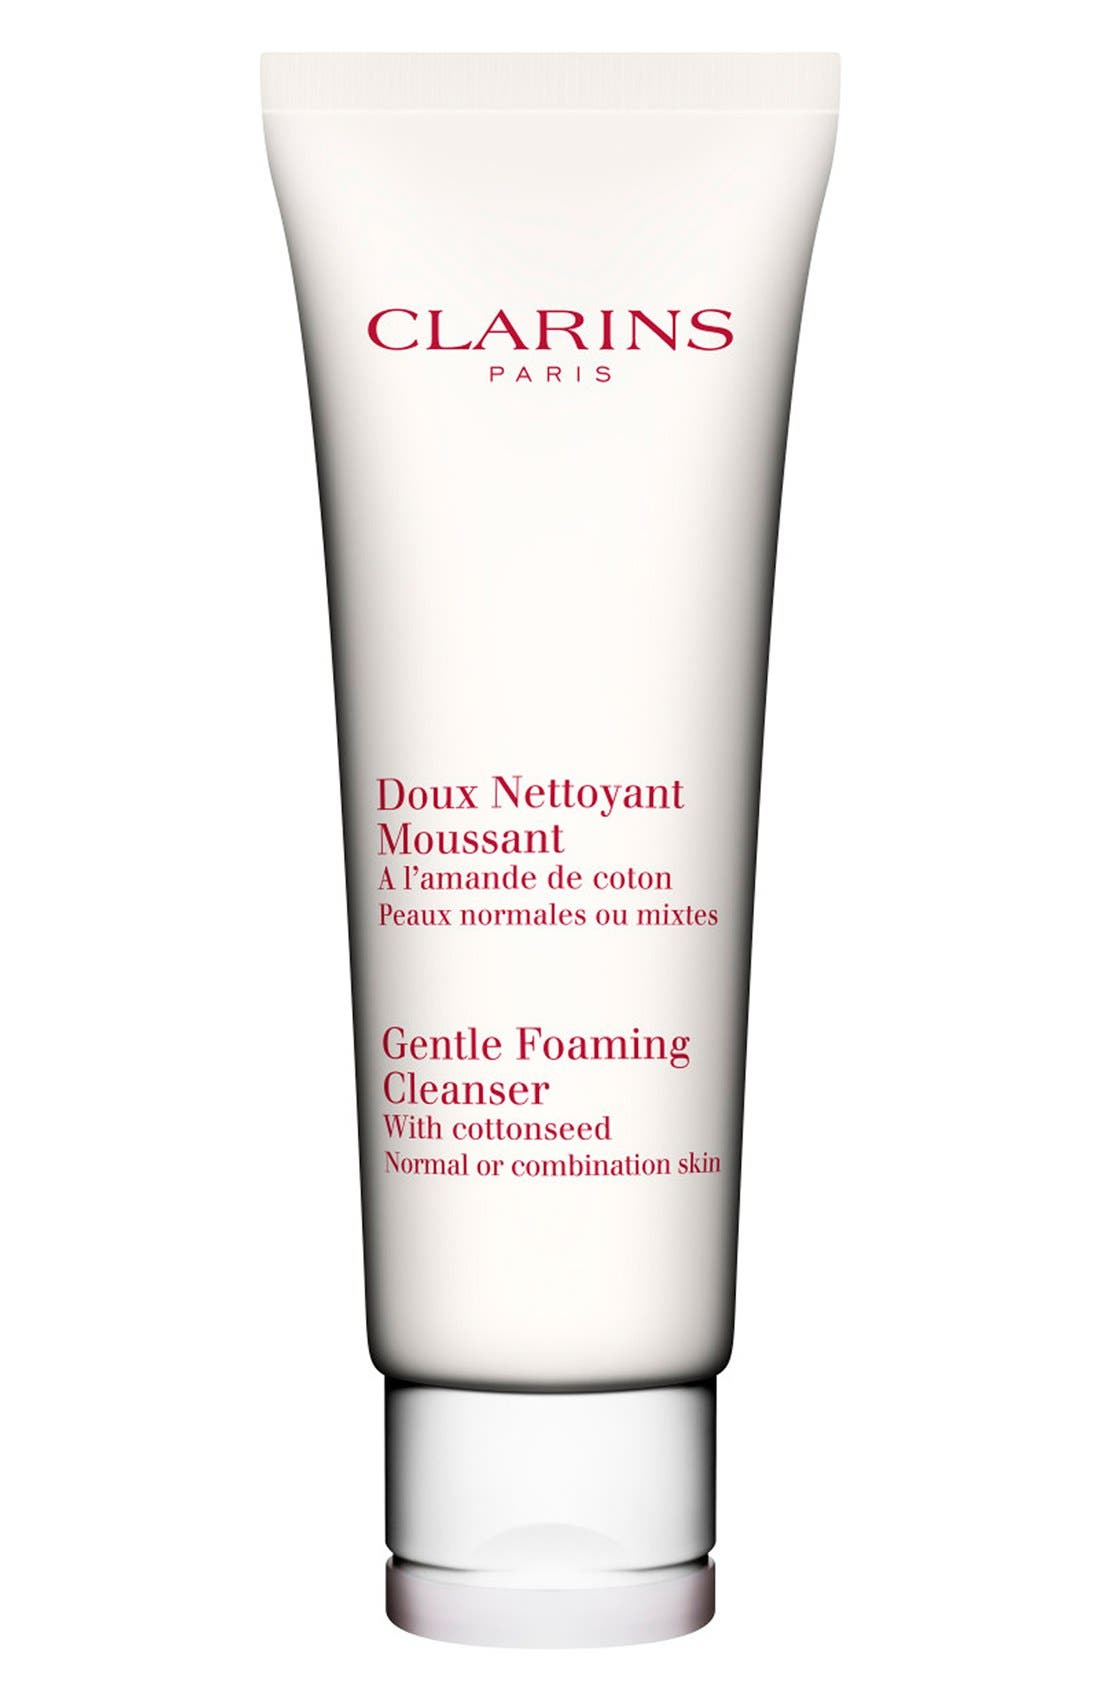 CLARINS Gentle Foaming Cleanser with Cottonseed for Normal/Combination Skin Types, Main, color, NO COLOR